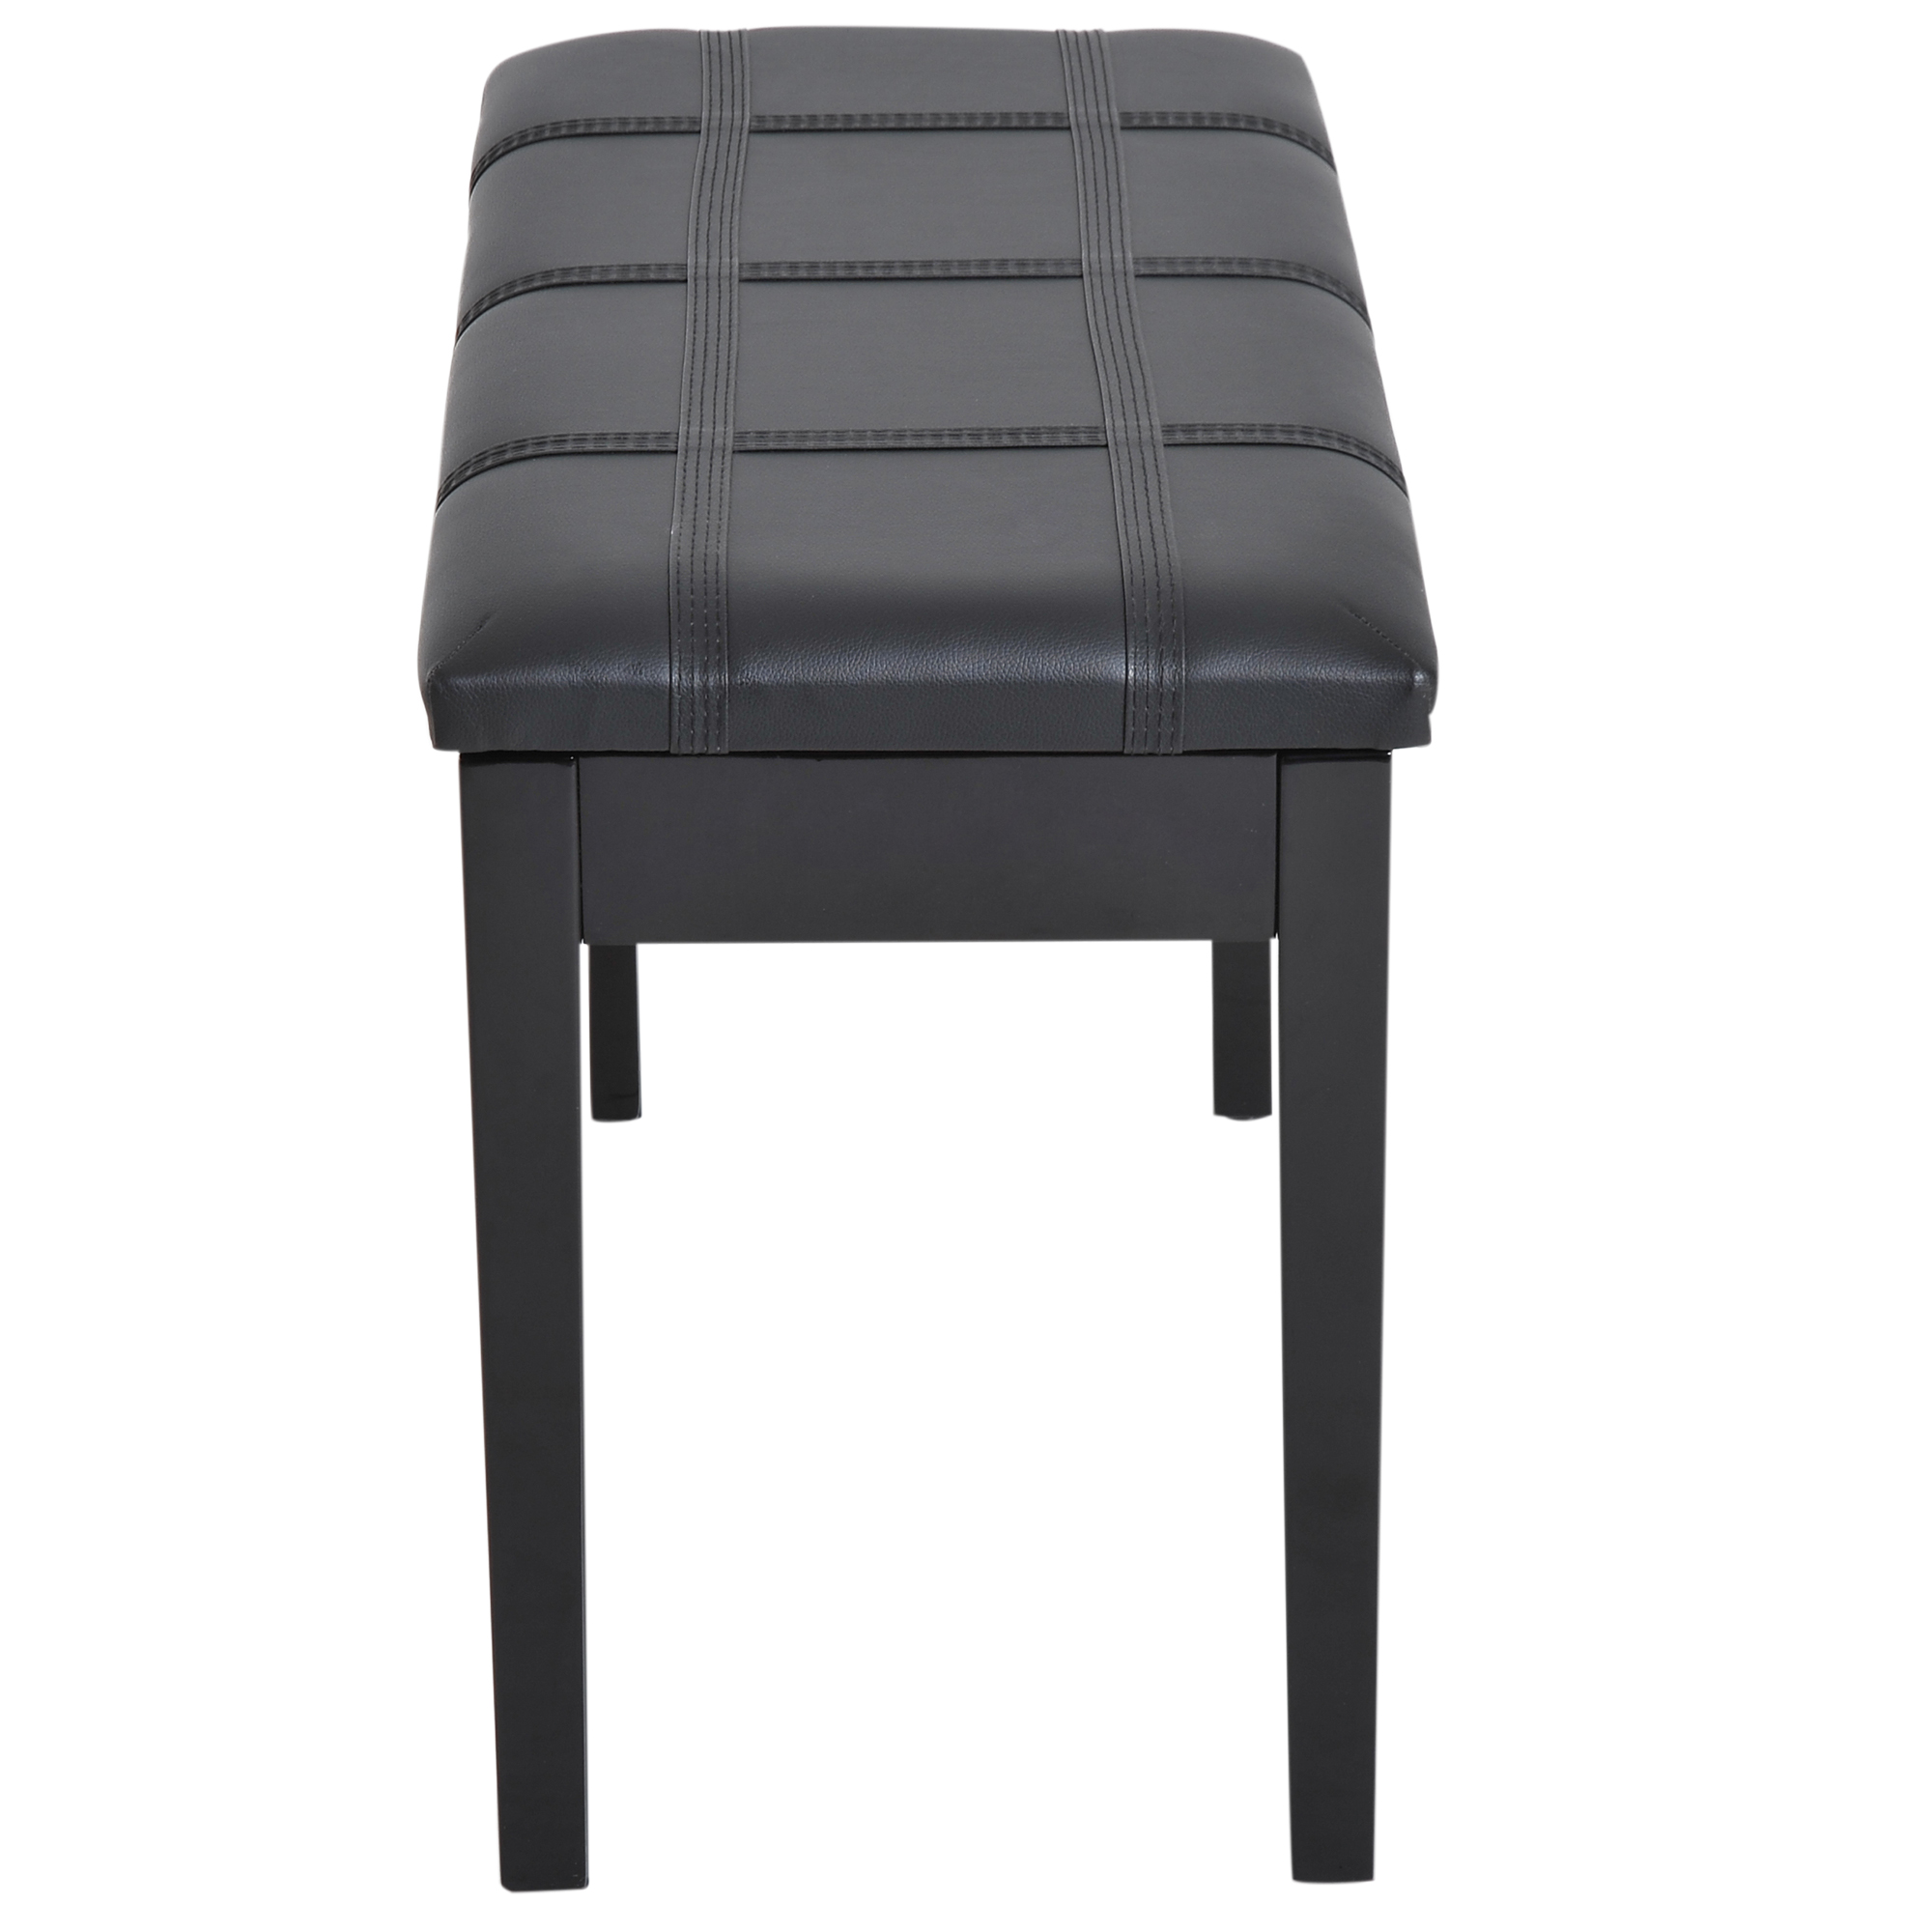 Two-Person-Lift-Top-Piano-Storage-Bench-Faux-Leather-Keyboard-Stool-Birchwood thumbnail 9